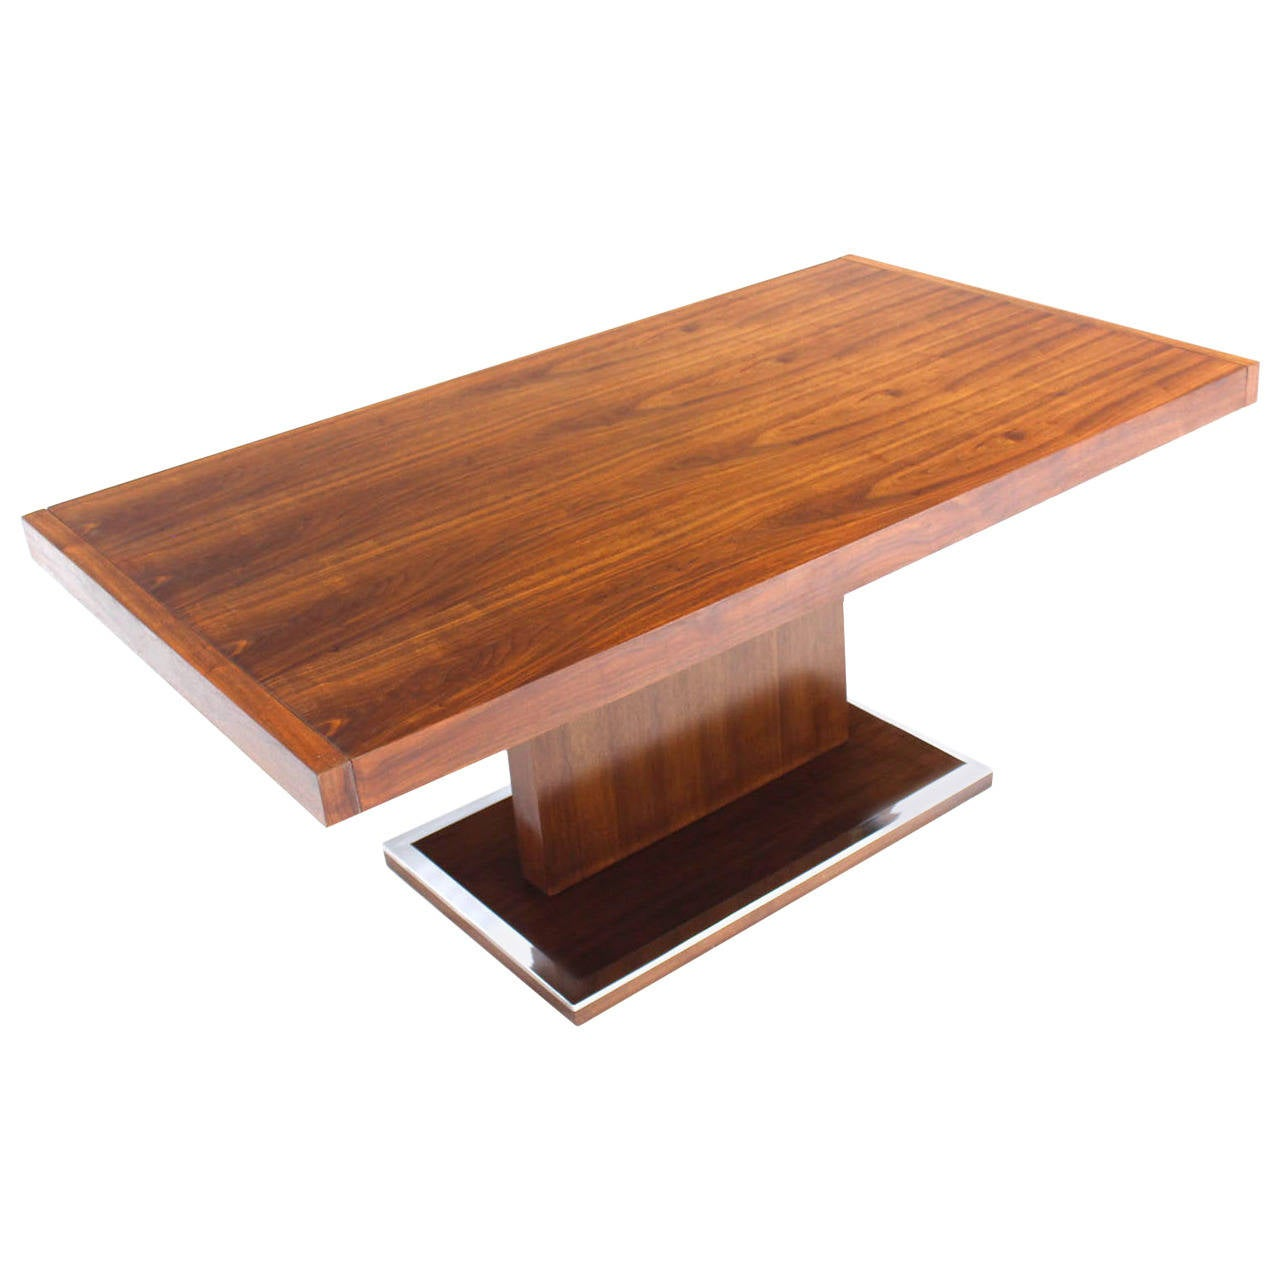 Mid century modern rectangular pedestal base walnut dining for Dining room table pedestal bases